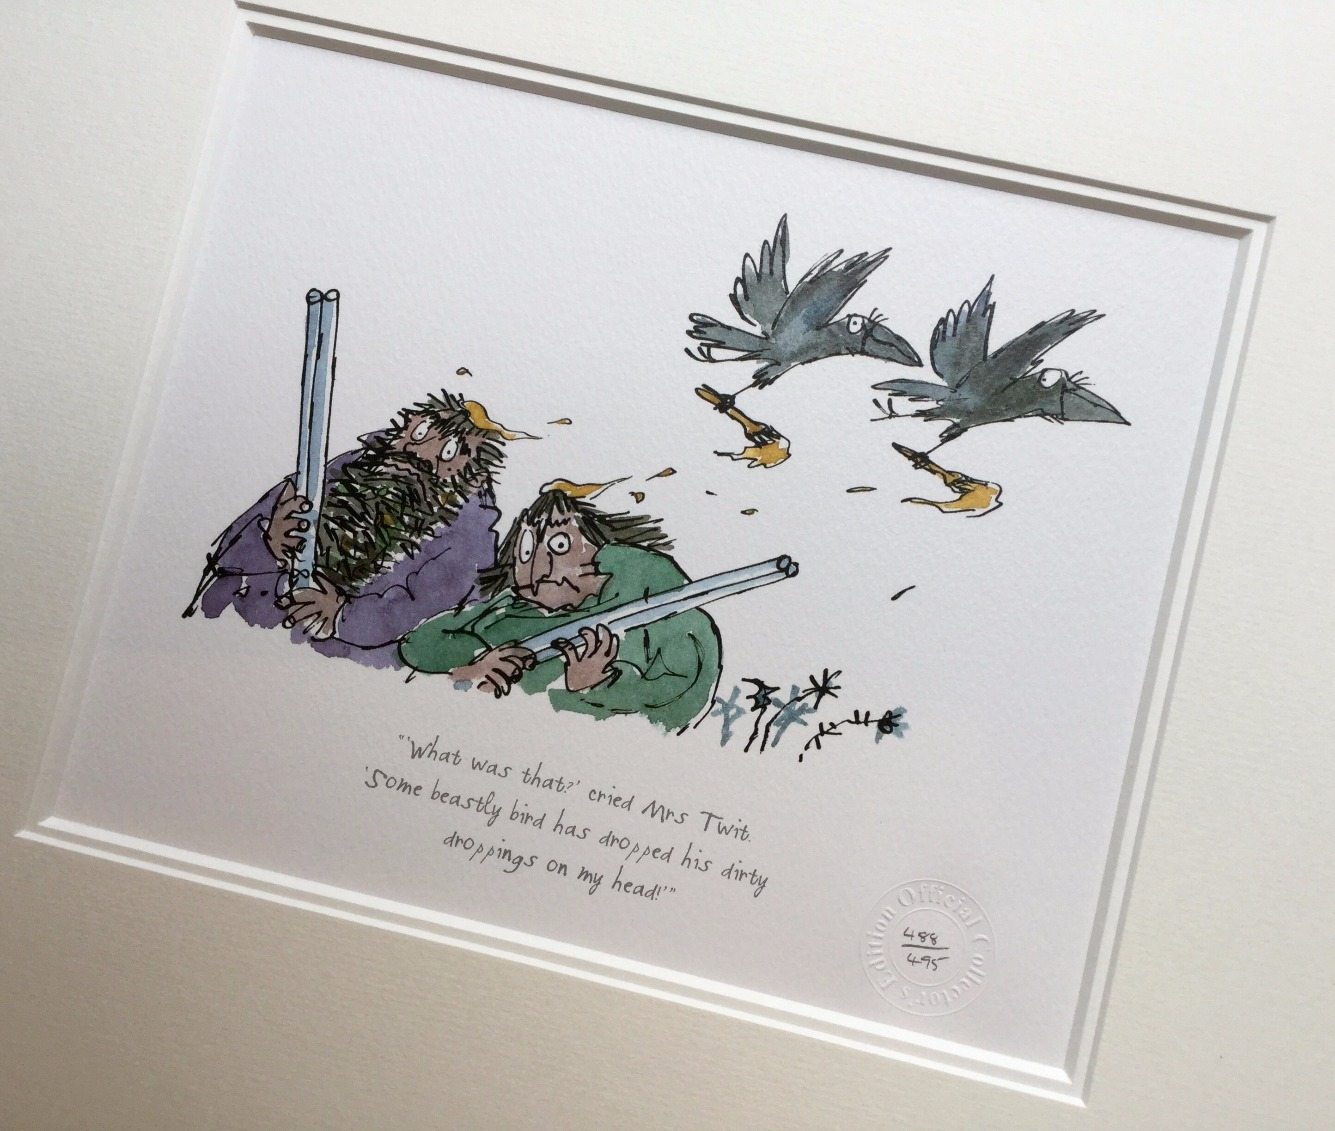 What was that? Cried Mrs Twit by Quentin Blake